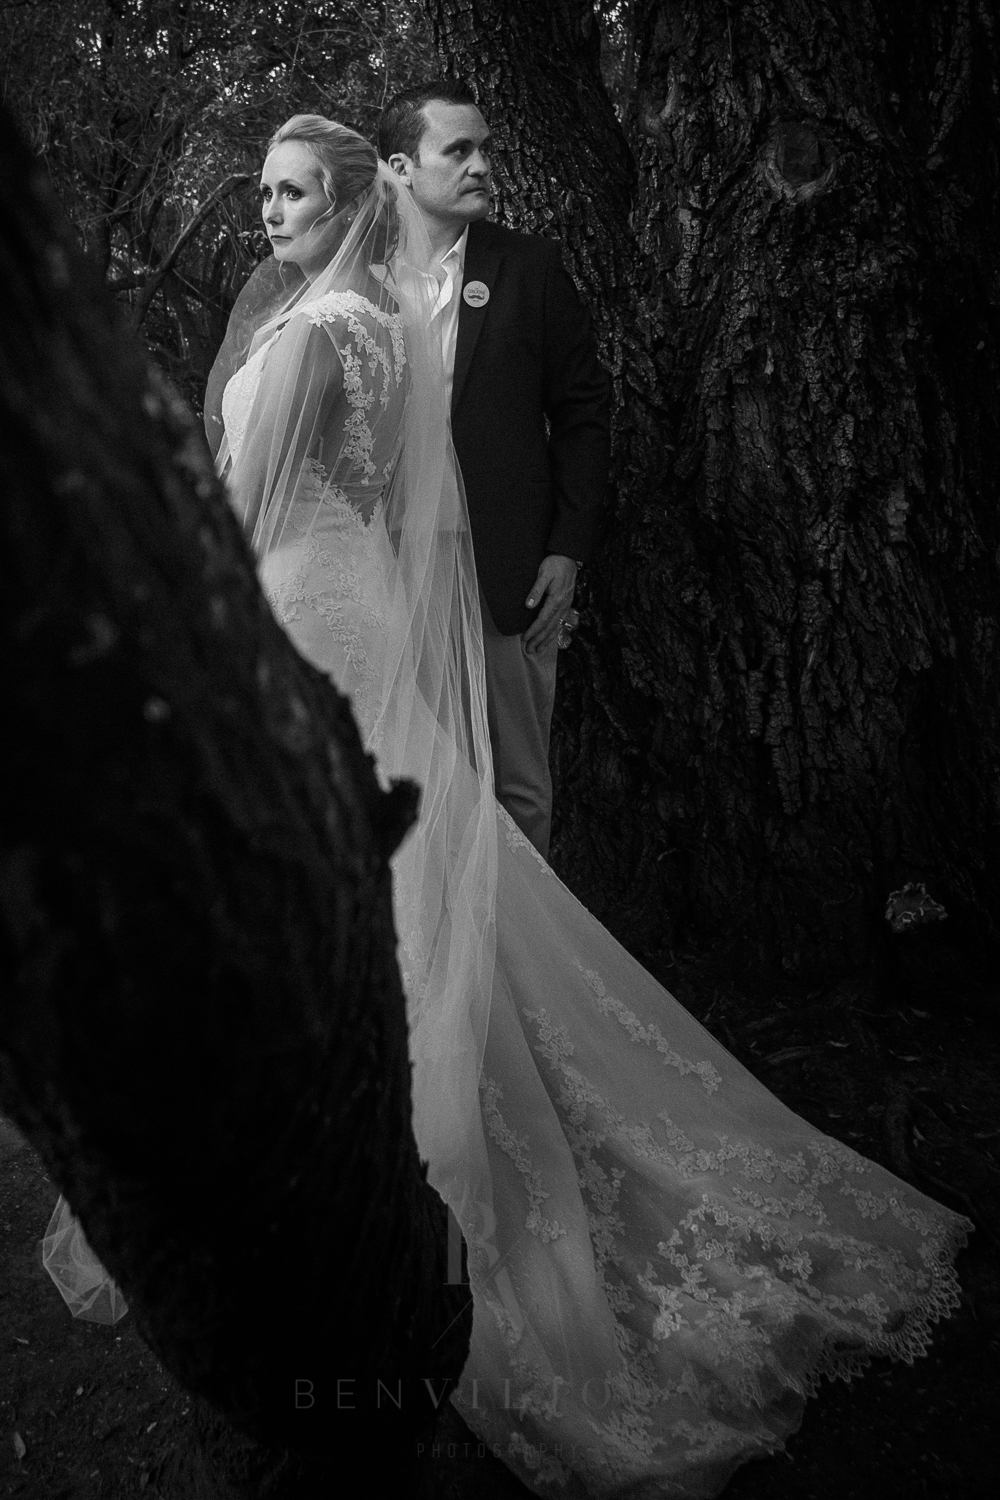 Black and white wedding photography, Ben Viljoen Photography, The Nutcracker wedding venue, Parys weddings